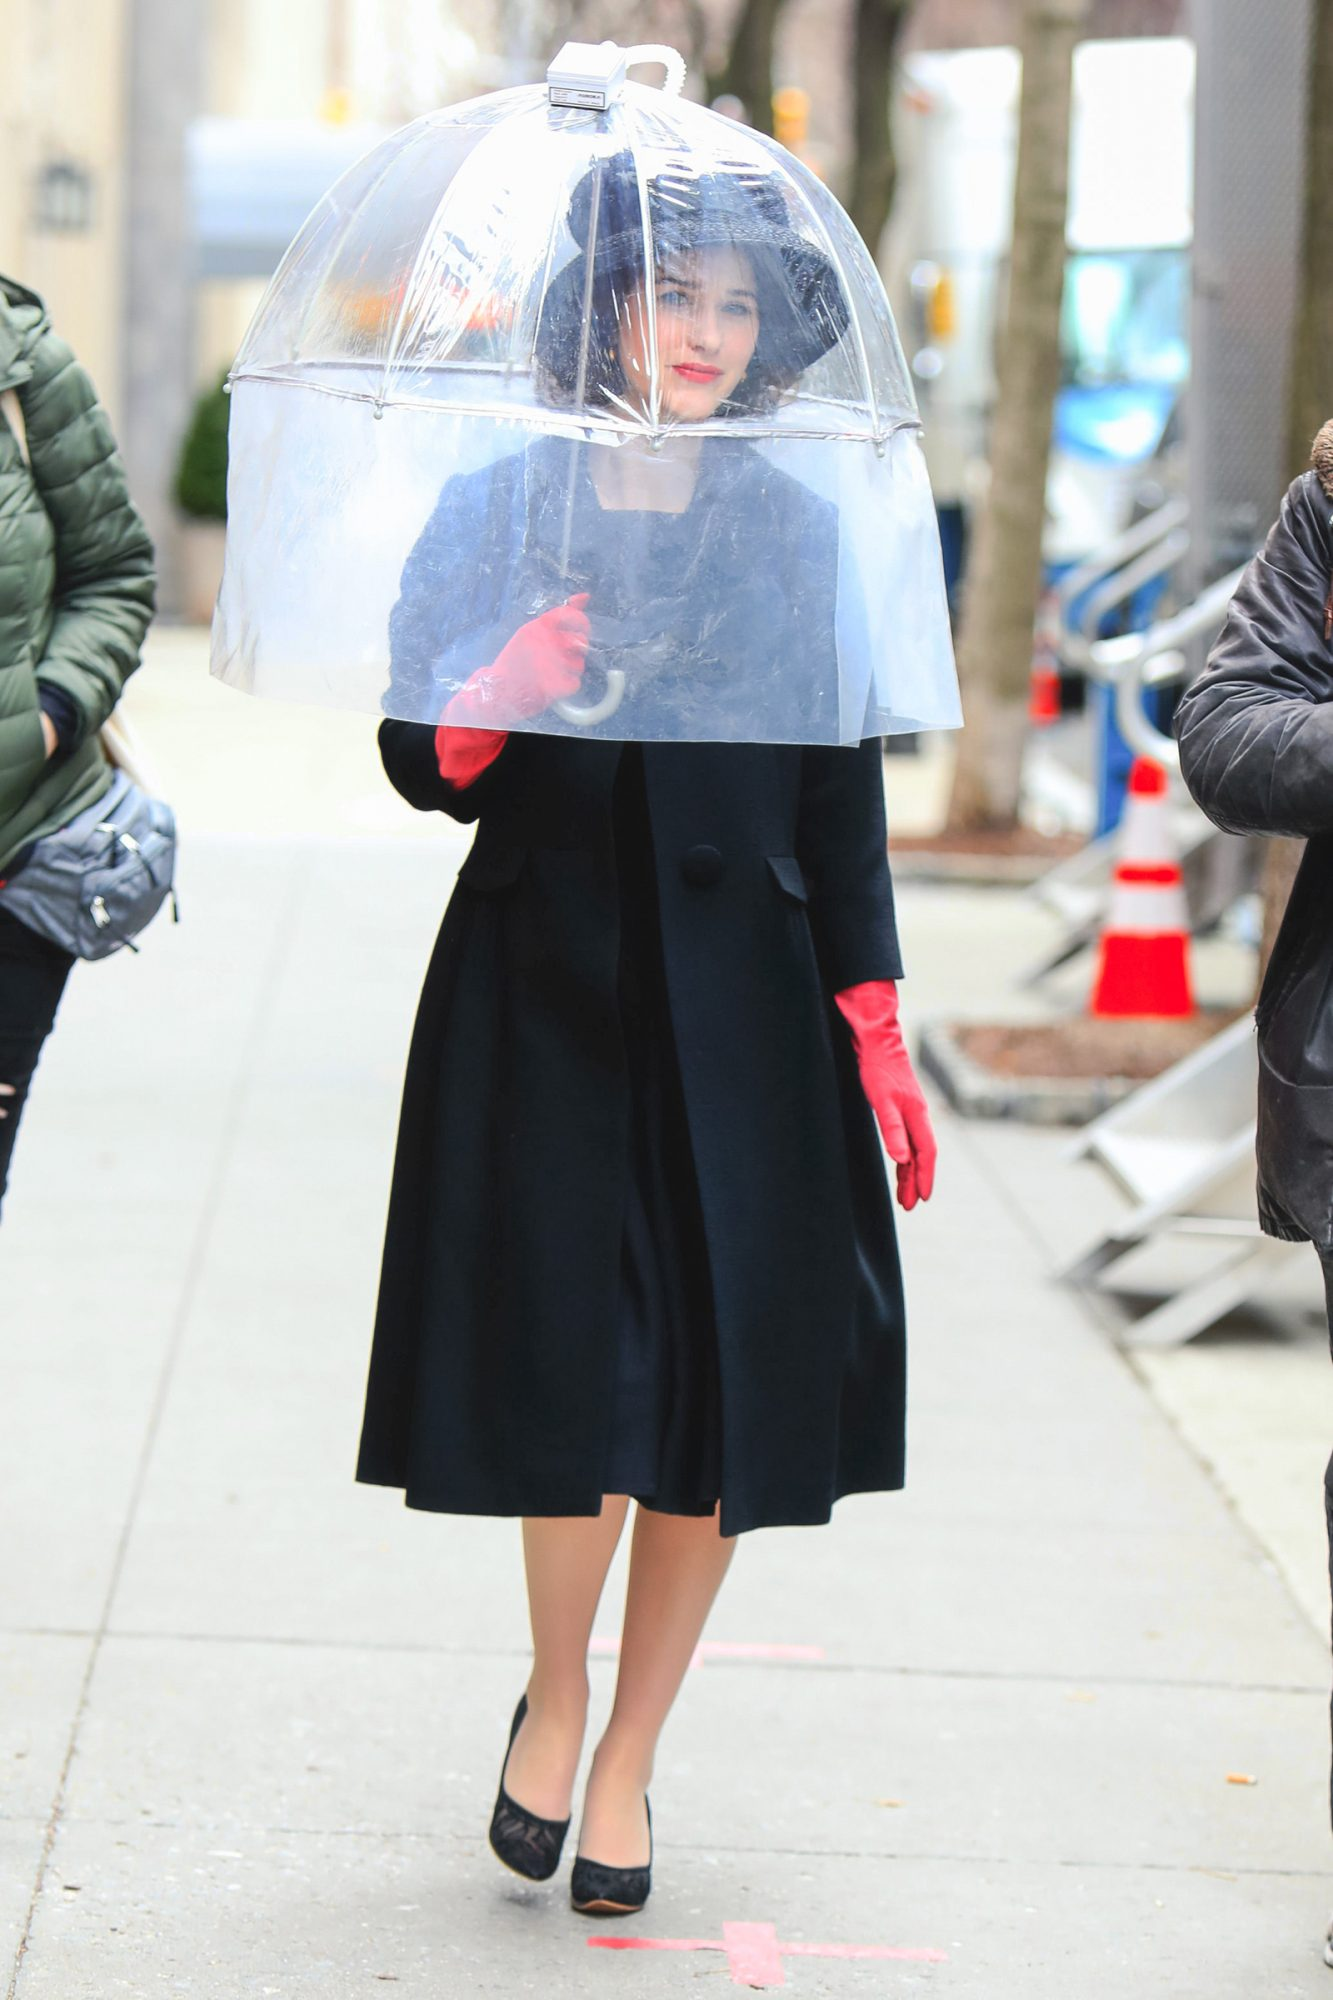 Rachel Brosnahan is seen at the film set of 'The Marvelous Mrs. Maisel' TV Series on March 04, 2021 in New York City